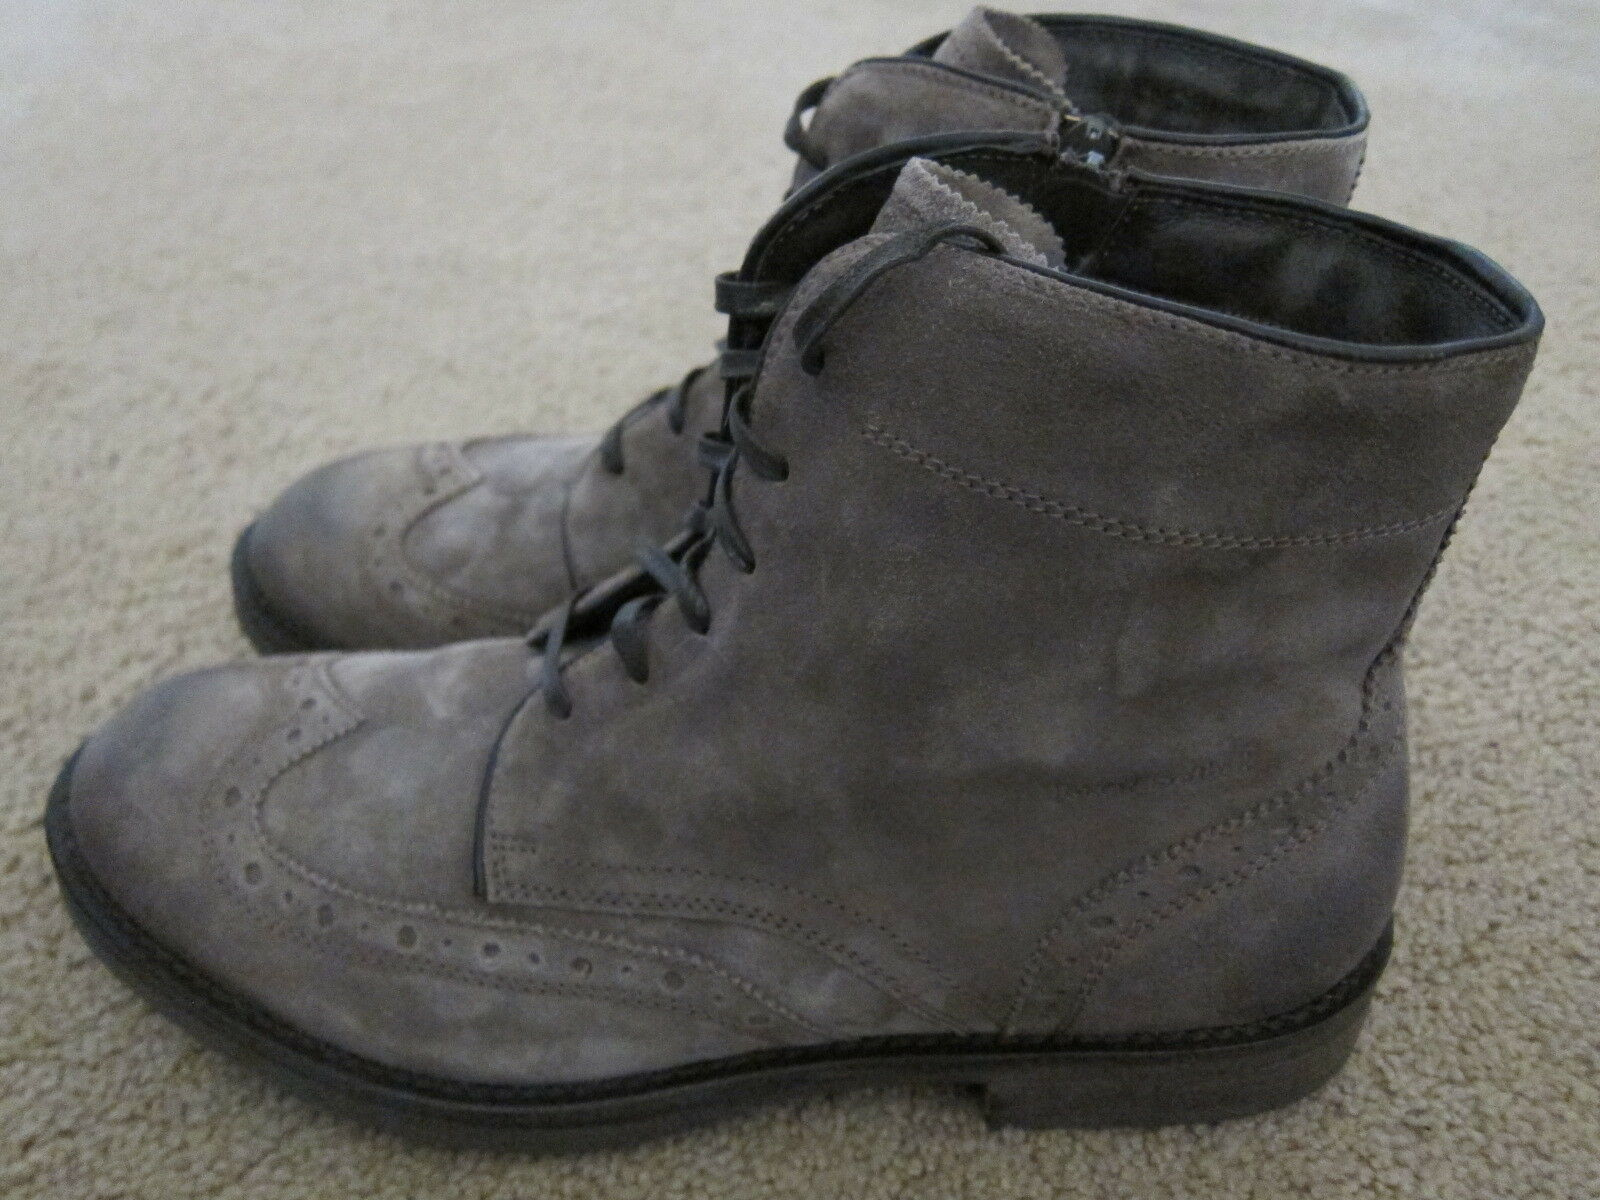 6bb3fc3e19a29 JOSEF SEIBEL Mens Italian Suede Boots shoes Size US 11 -11.5 NWB ...